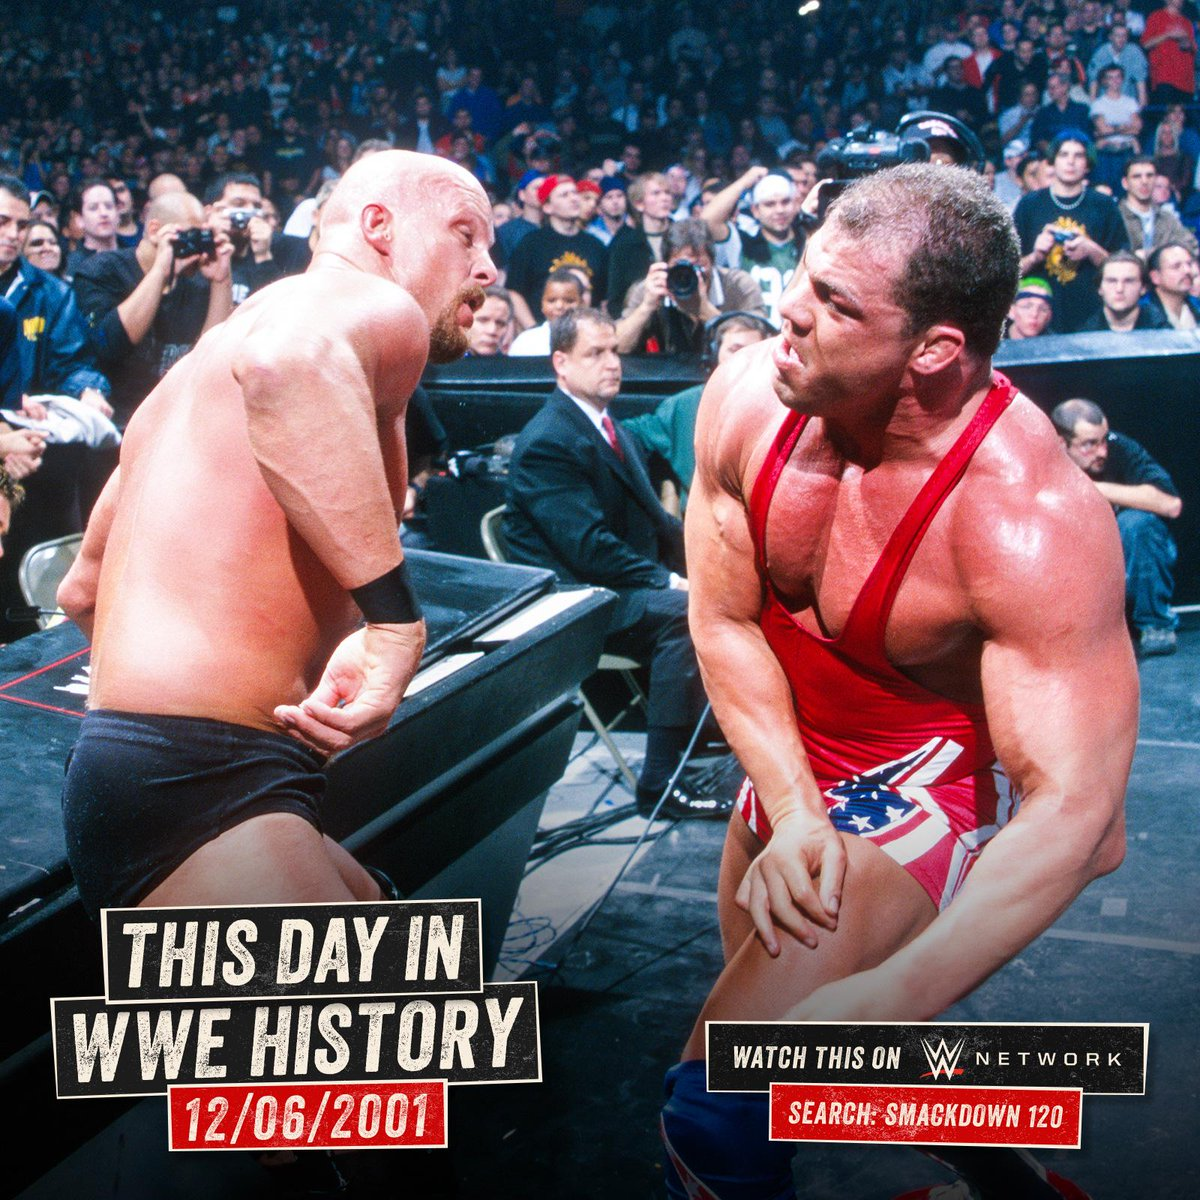 .@steveaustinBSR & @TheRock were on the same page on this day in 2001 when they took on @RealKurtAngle & @IAmJericho on #SmackDown! wwe.me/mibY2b